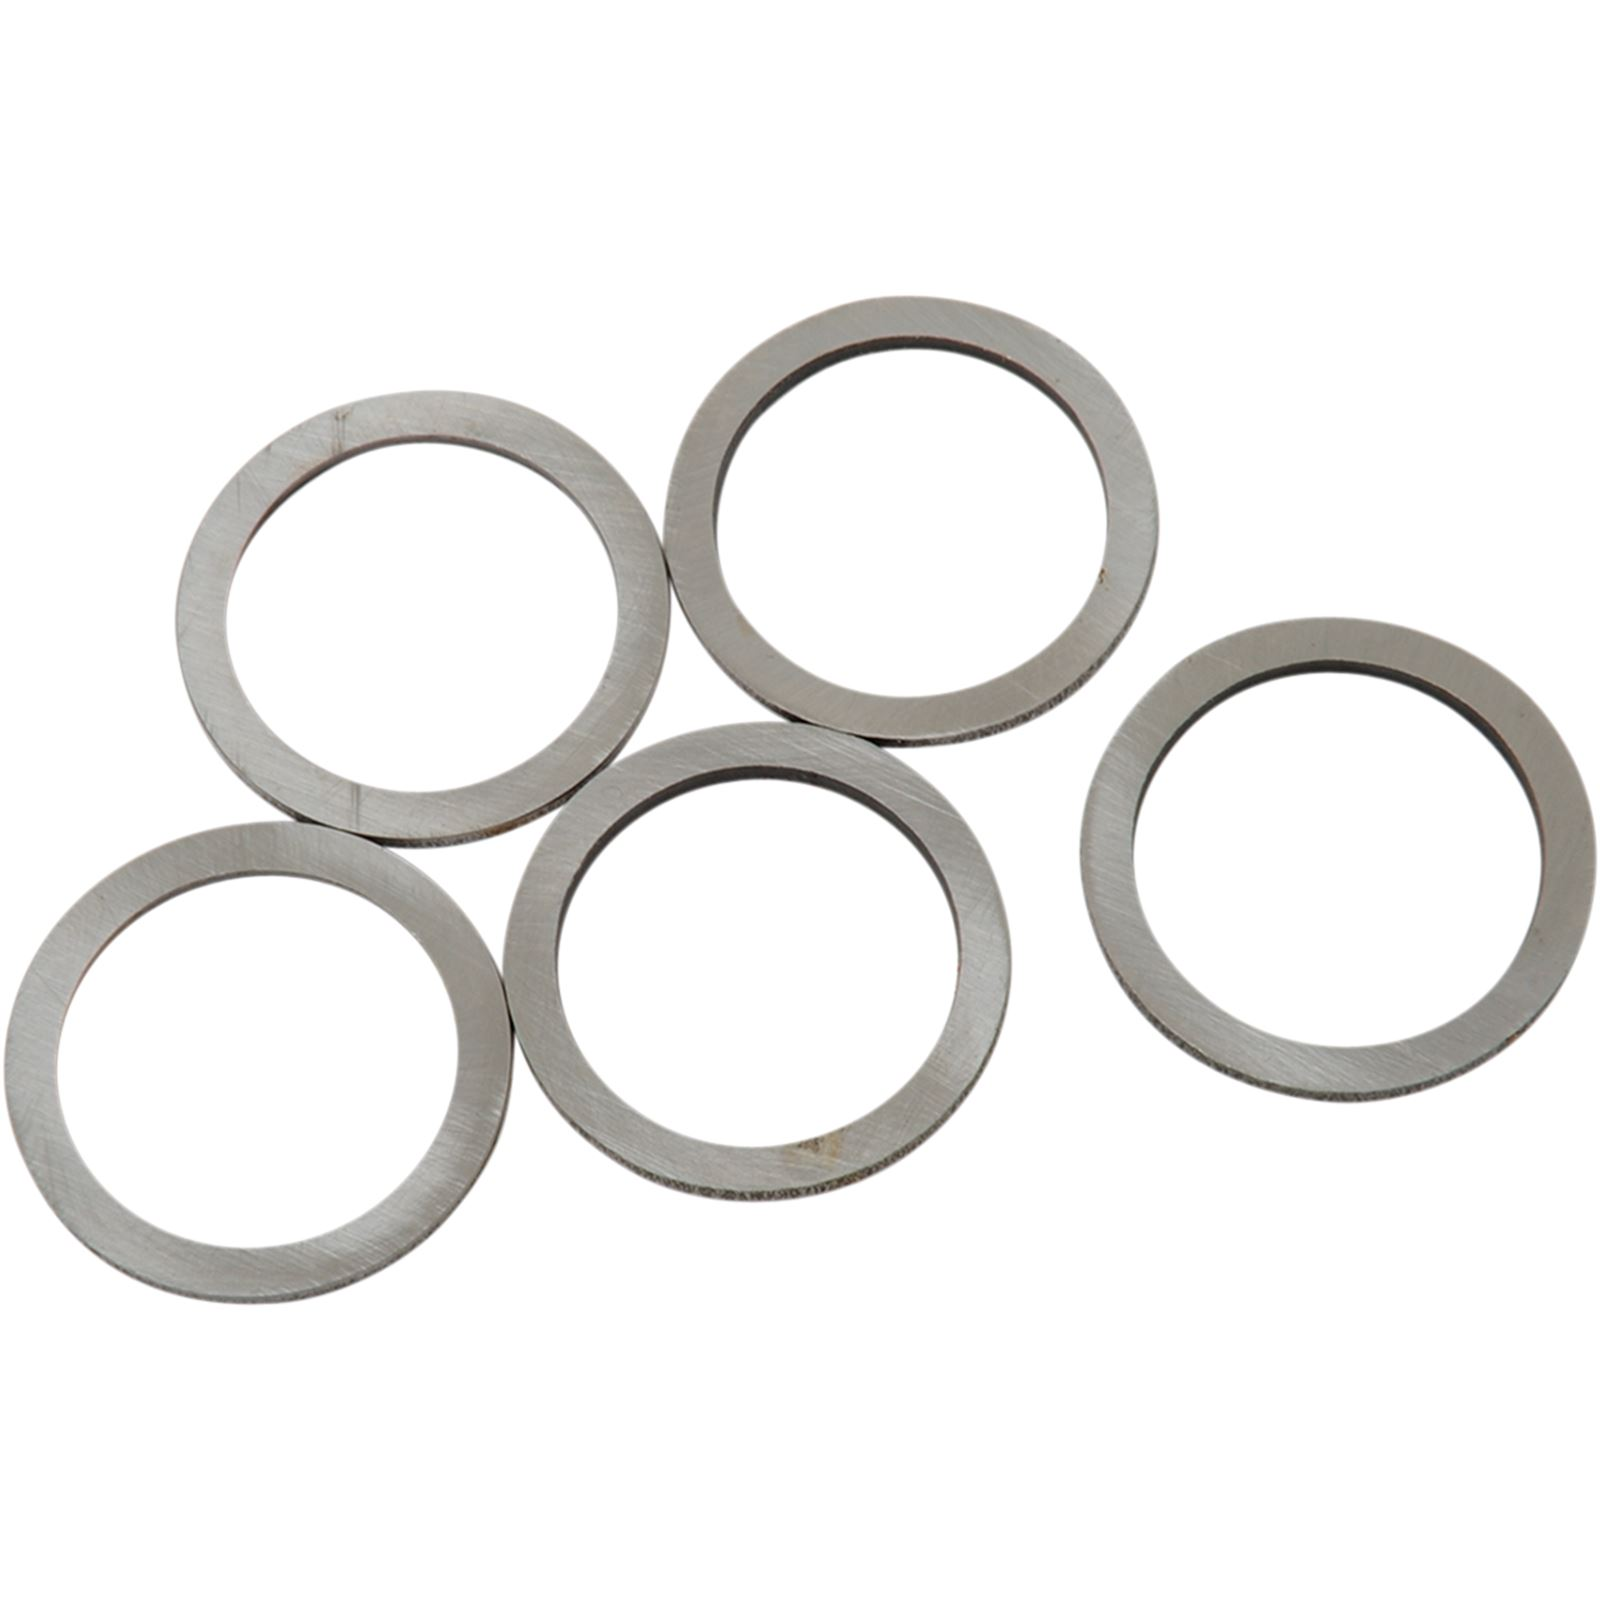 Eastern Motorcycle Parts Washers